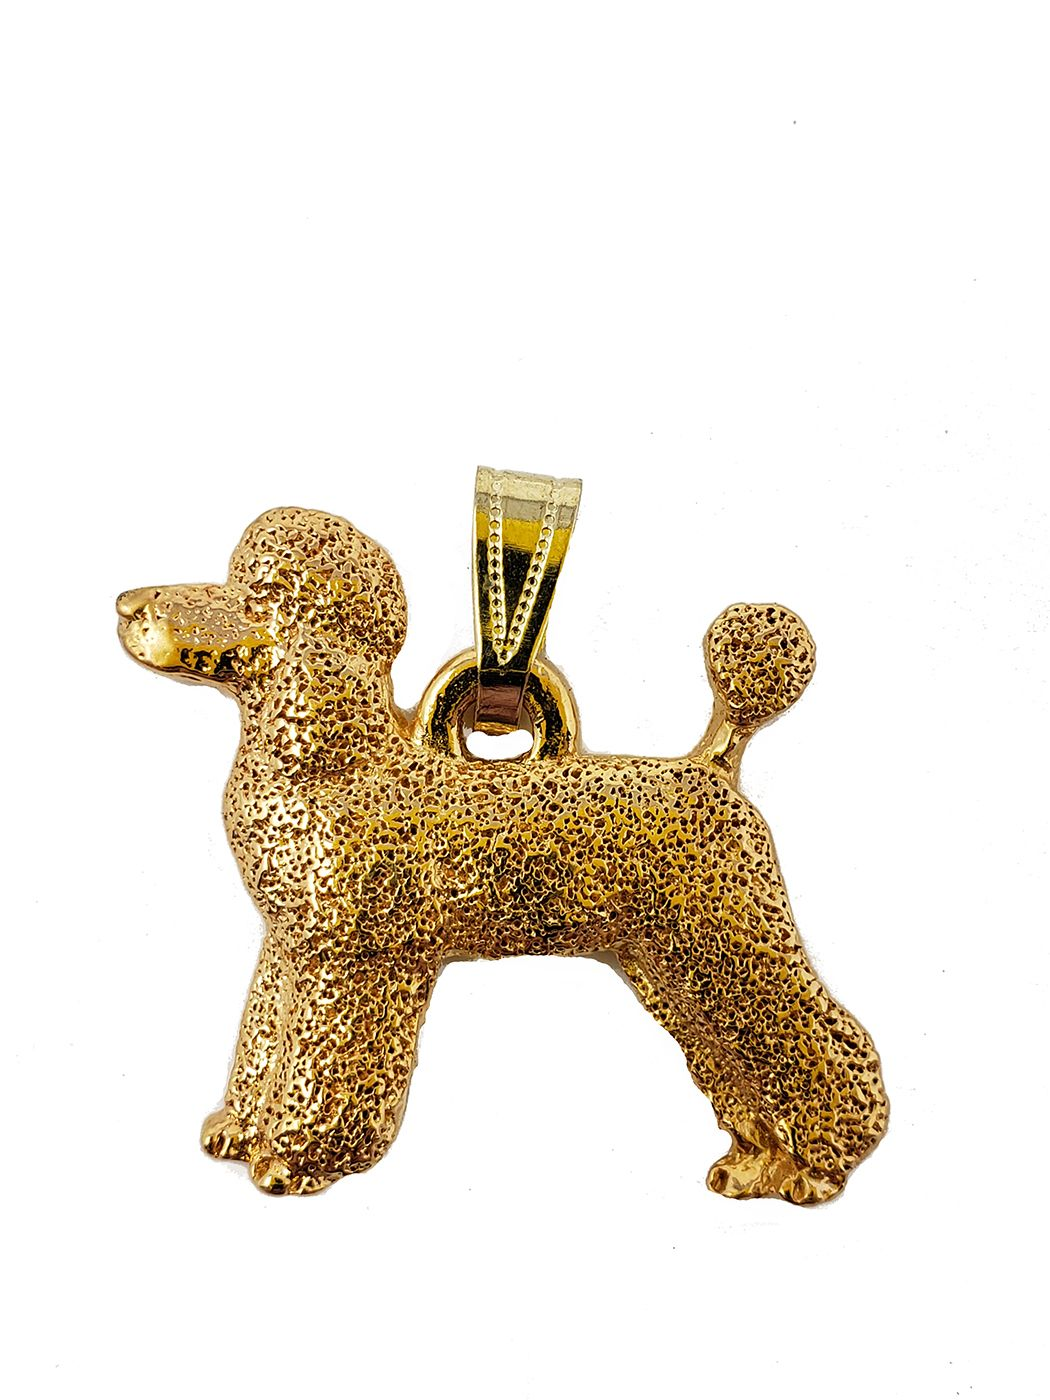 Poodle 24K Gold Plated Pendant